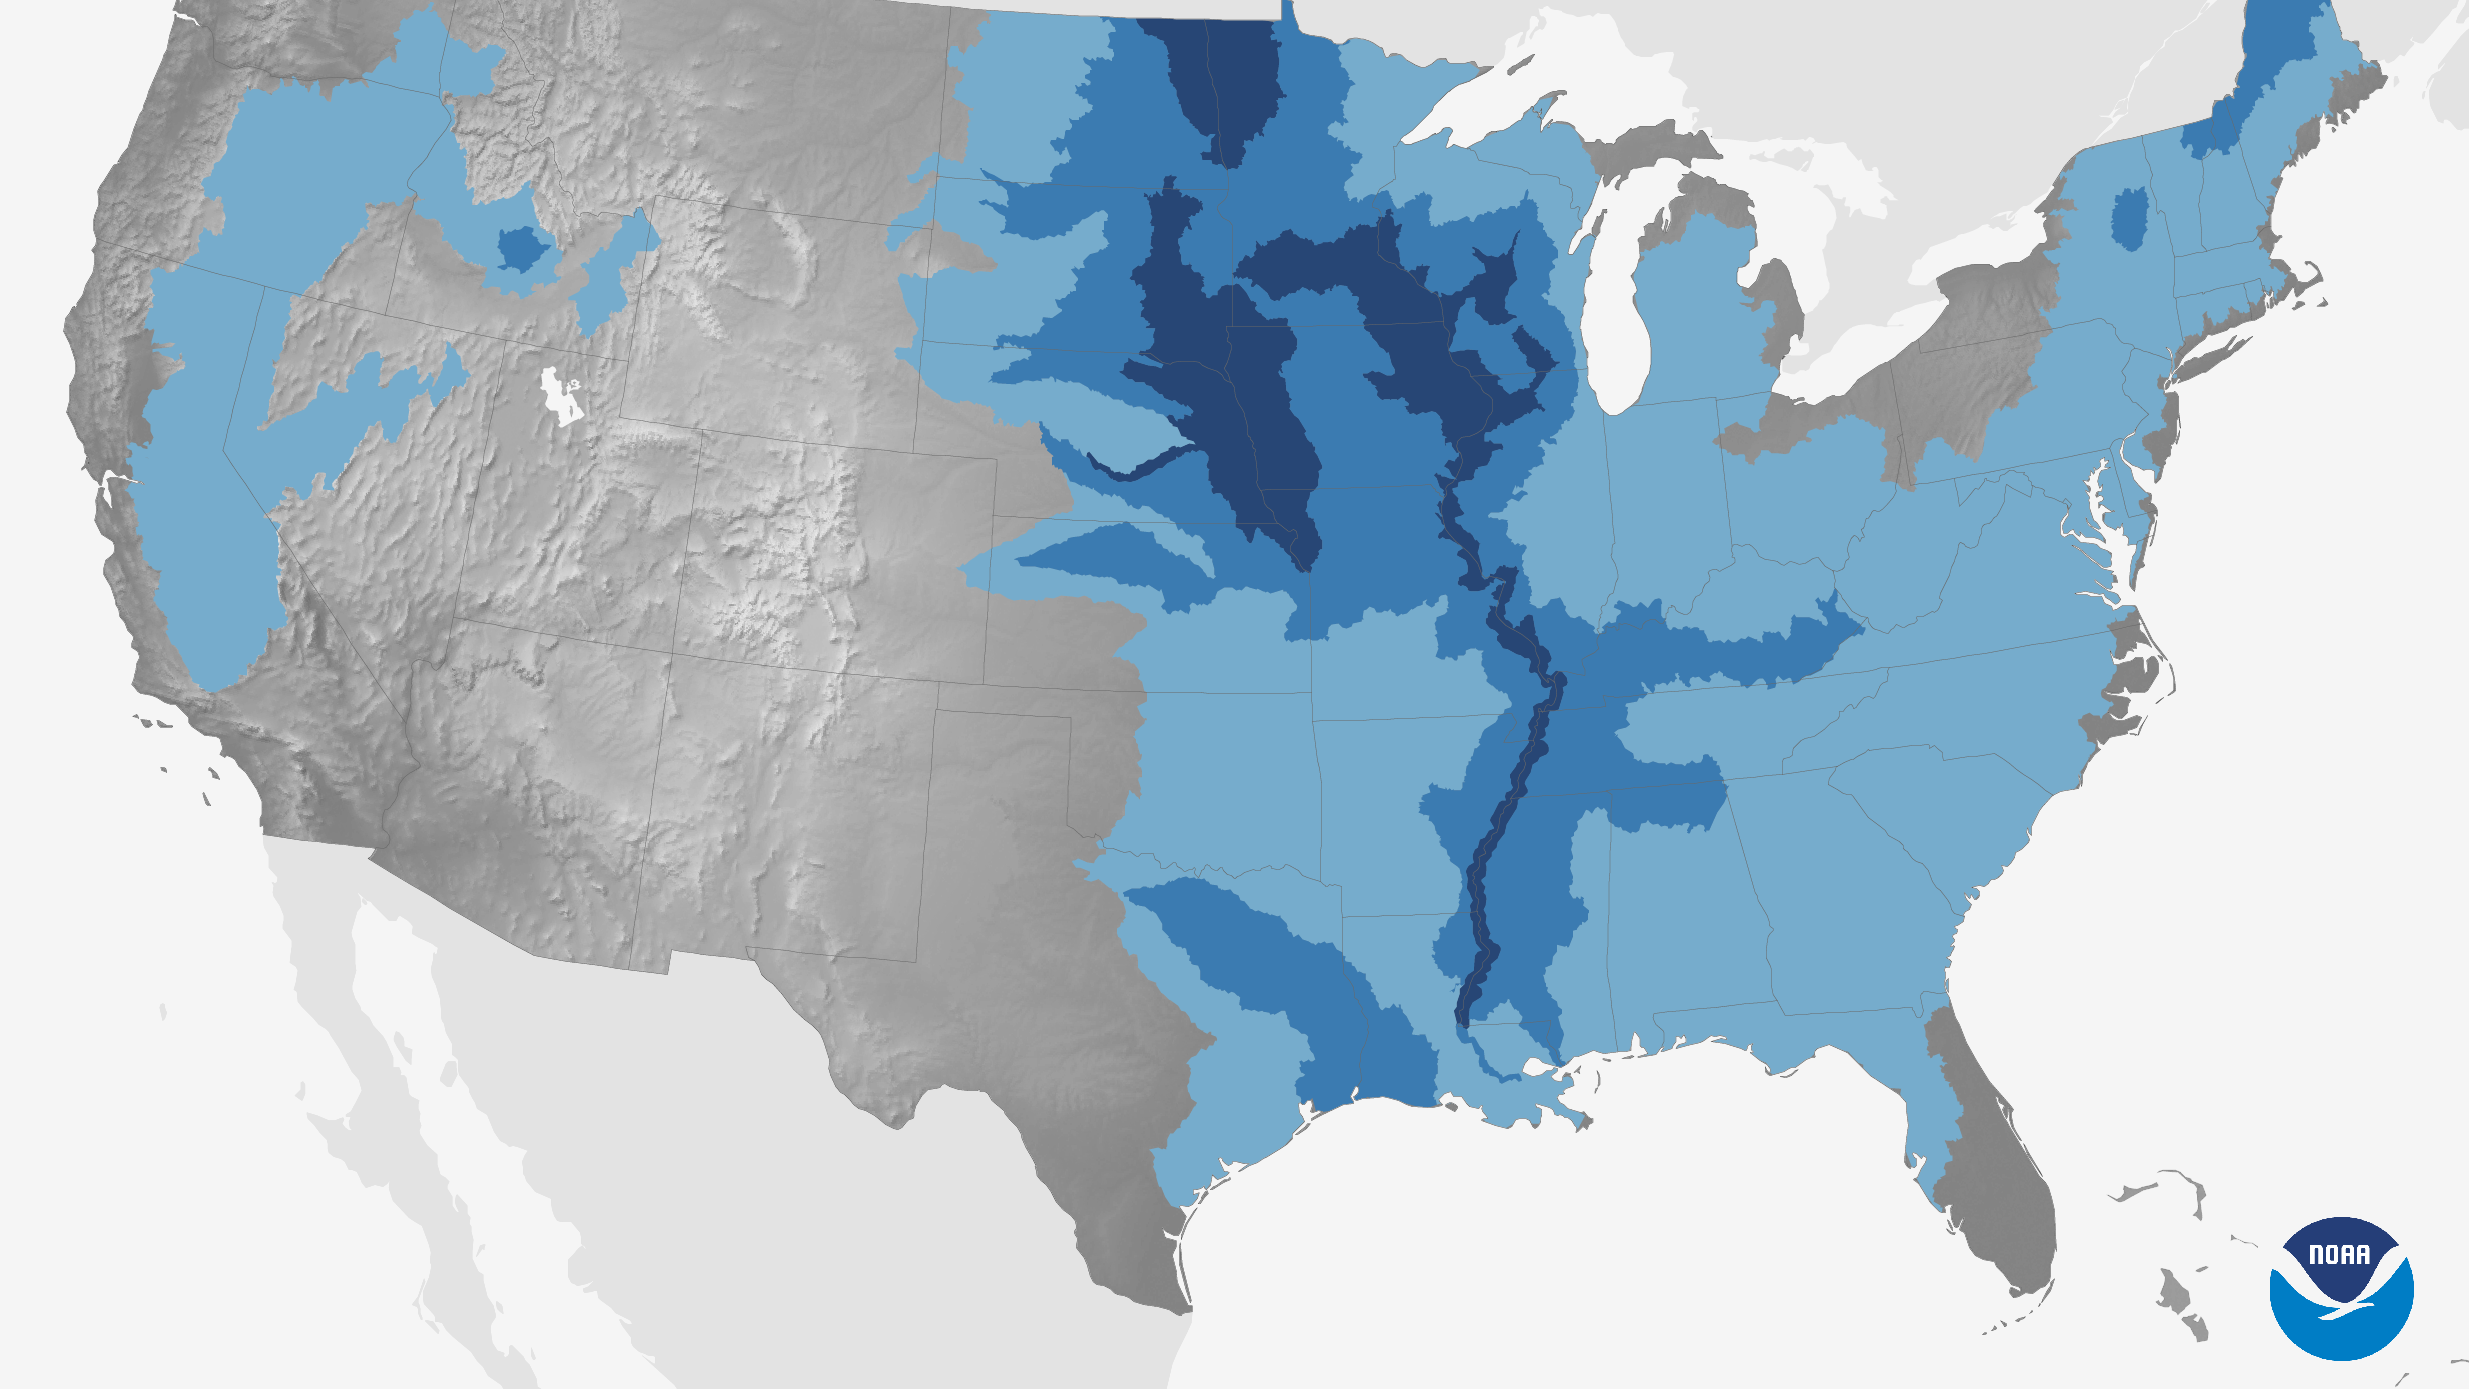 2019 U.S. Spring Flood Outlook: Shades of dark blue indicate high risk of major spring flooding.<br><p>Courtesy: NOAA, Climate.gov</p><p></p>